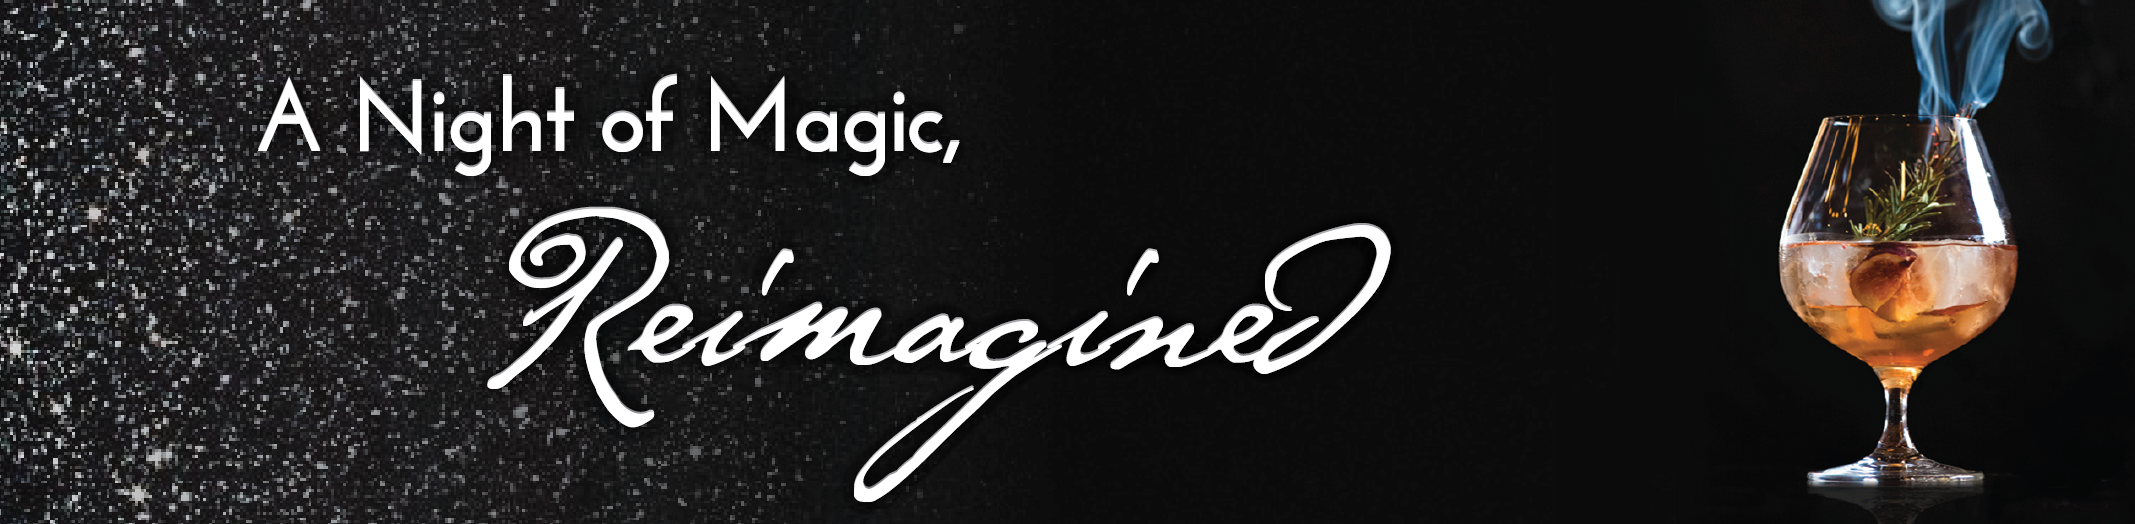 Catering-Magic-Events-Orlando-Florida-Puff-and-Stuff.png